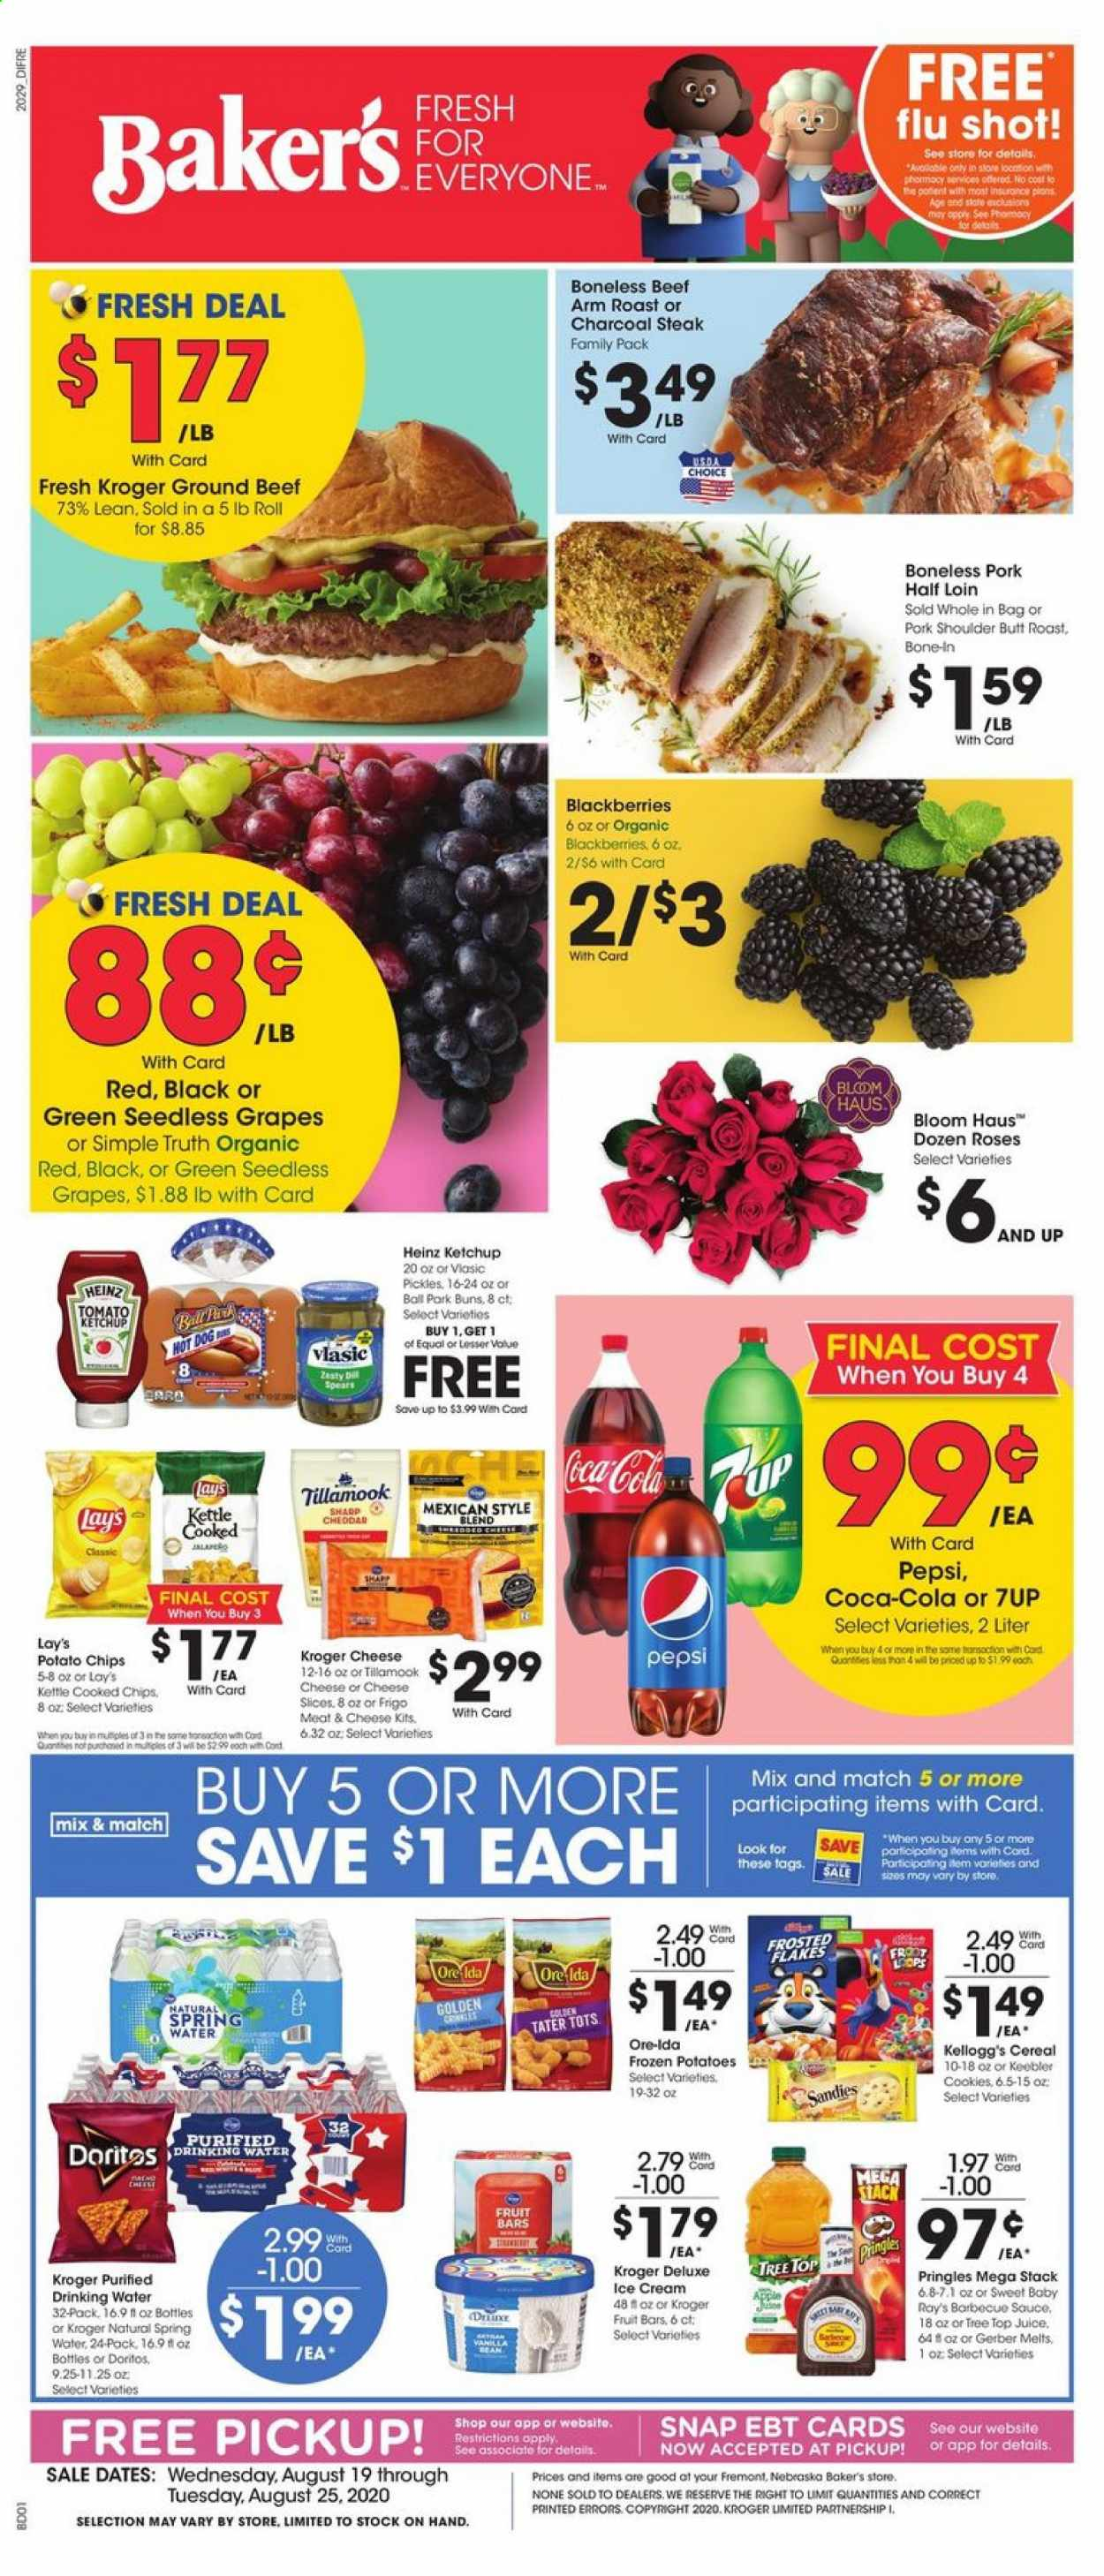 Baker's Flyer - 08.19.2020 - 08.25.2020 - Sales products - apples, beef meat, blackberries, cereals, coca-cola, cookies, dates, doritos, gerber, grapes, ground beef, seedless grapes, sharp, spring water, tree, heinz, hot dog, ice cream, ketchup, pickles, pork meat, pork shoulder, potato chips, potatoes, pringles, charcoal, pepsi, organic, chips, drinking water, steak, cheese, juice, roses, cereal, lay's, flakes, ball, fruit, meat, roast, family pack, apple, tomato, barbecue, kettle, spring. Page 1.